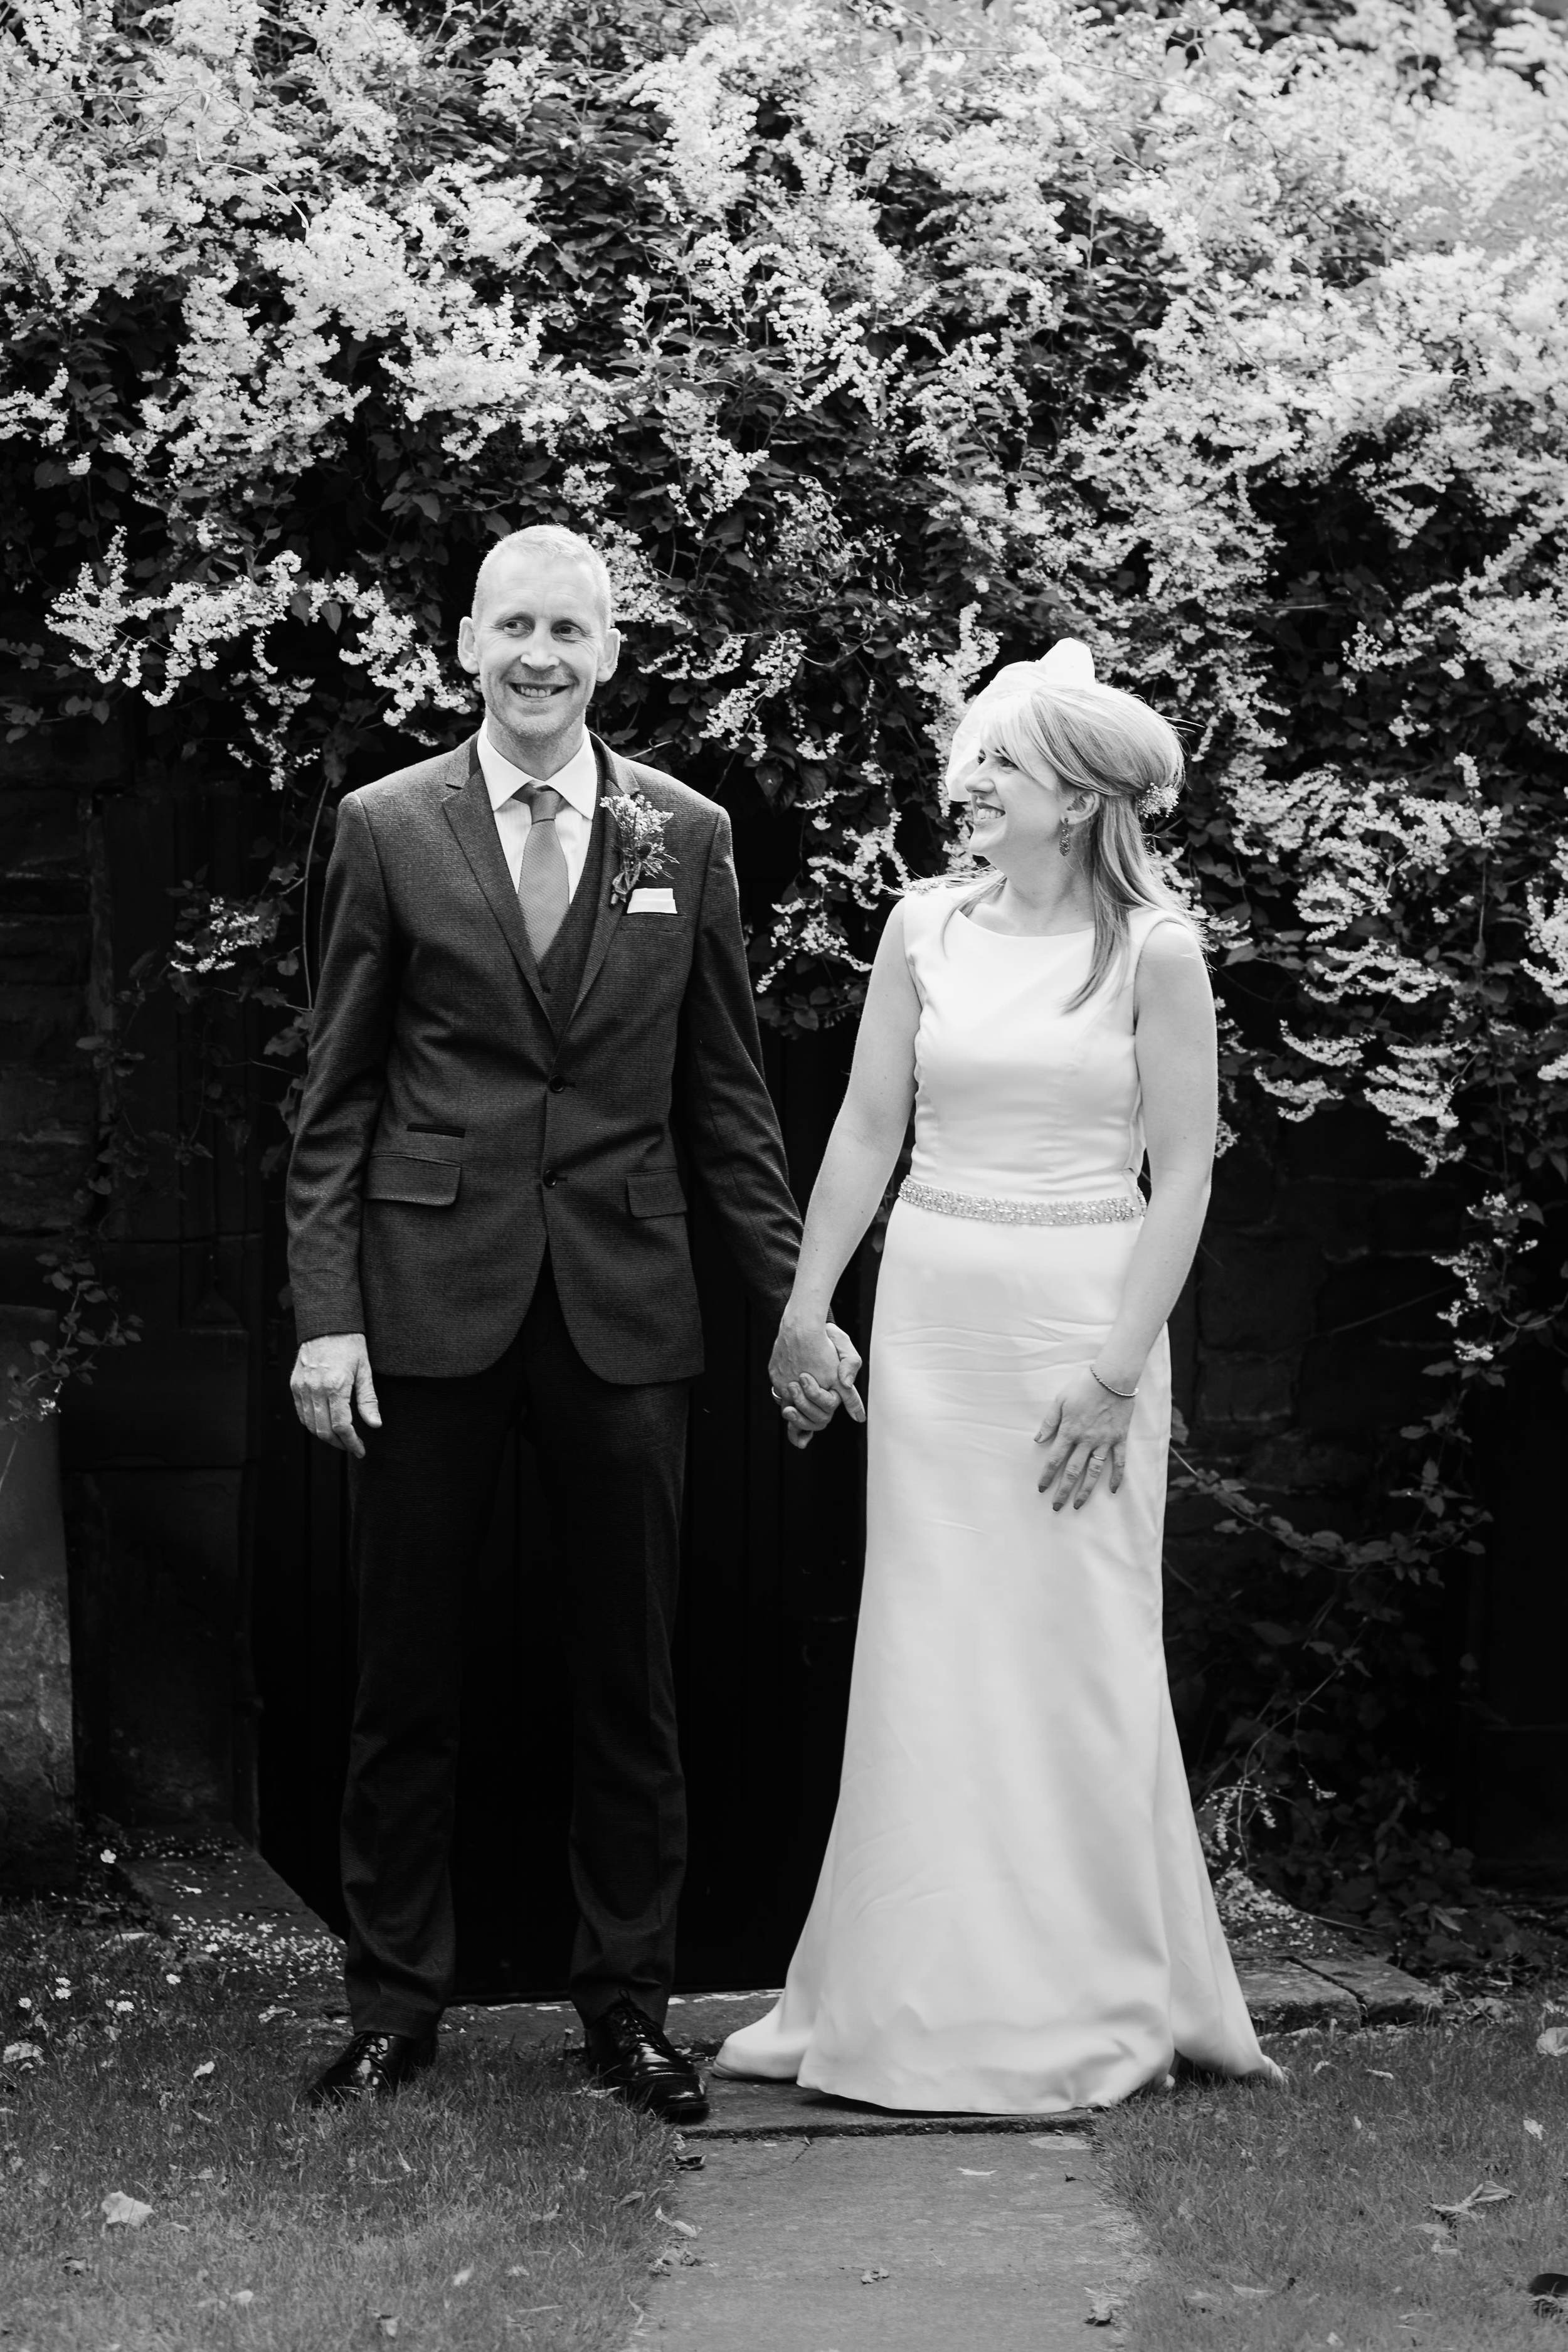 The bride and groom share a laugh in this black and white photograph taken at their weddding at Tithe Barn, Carlisle, Cumbria